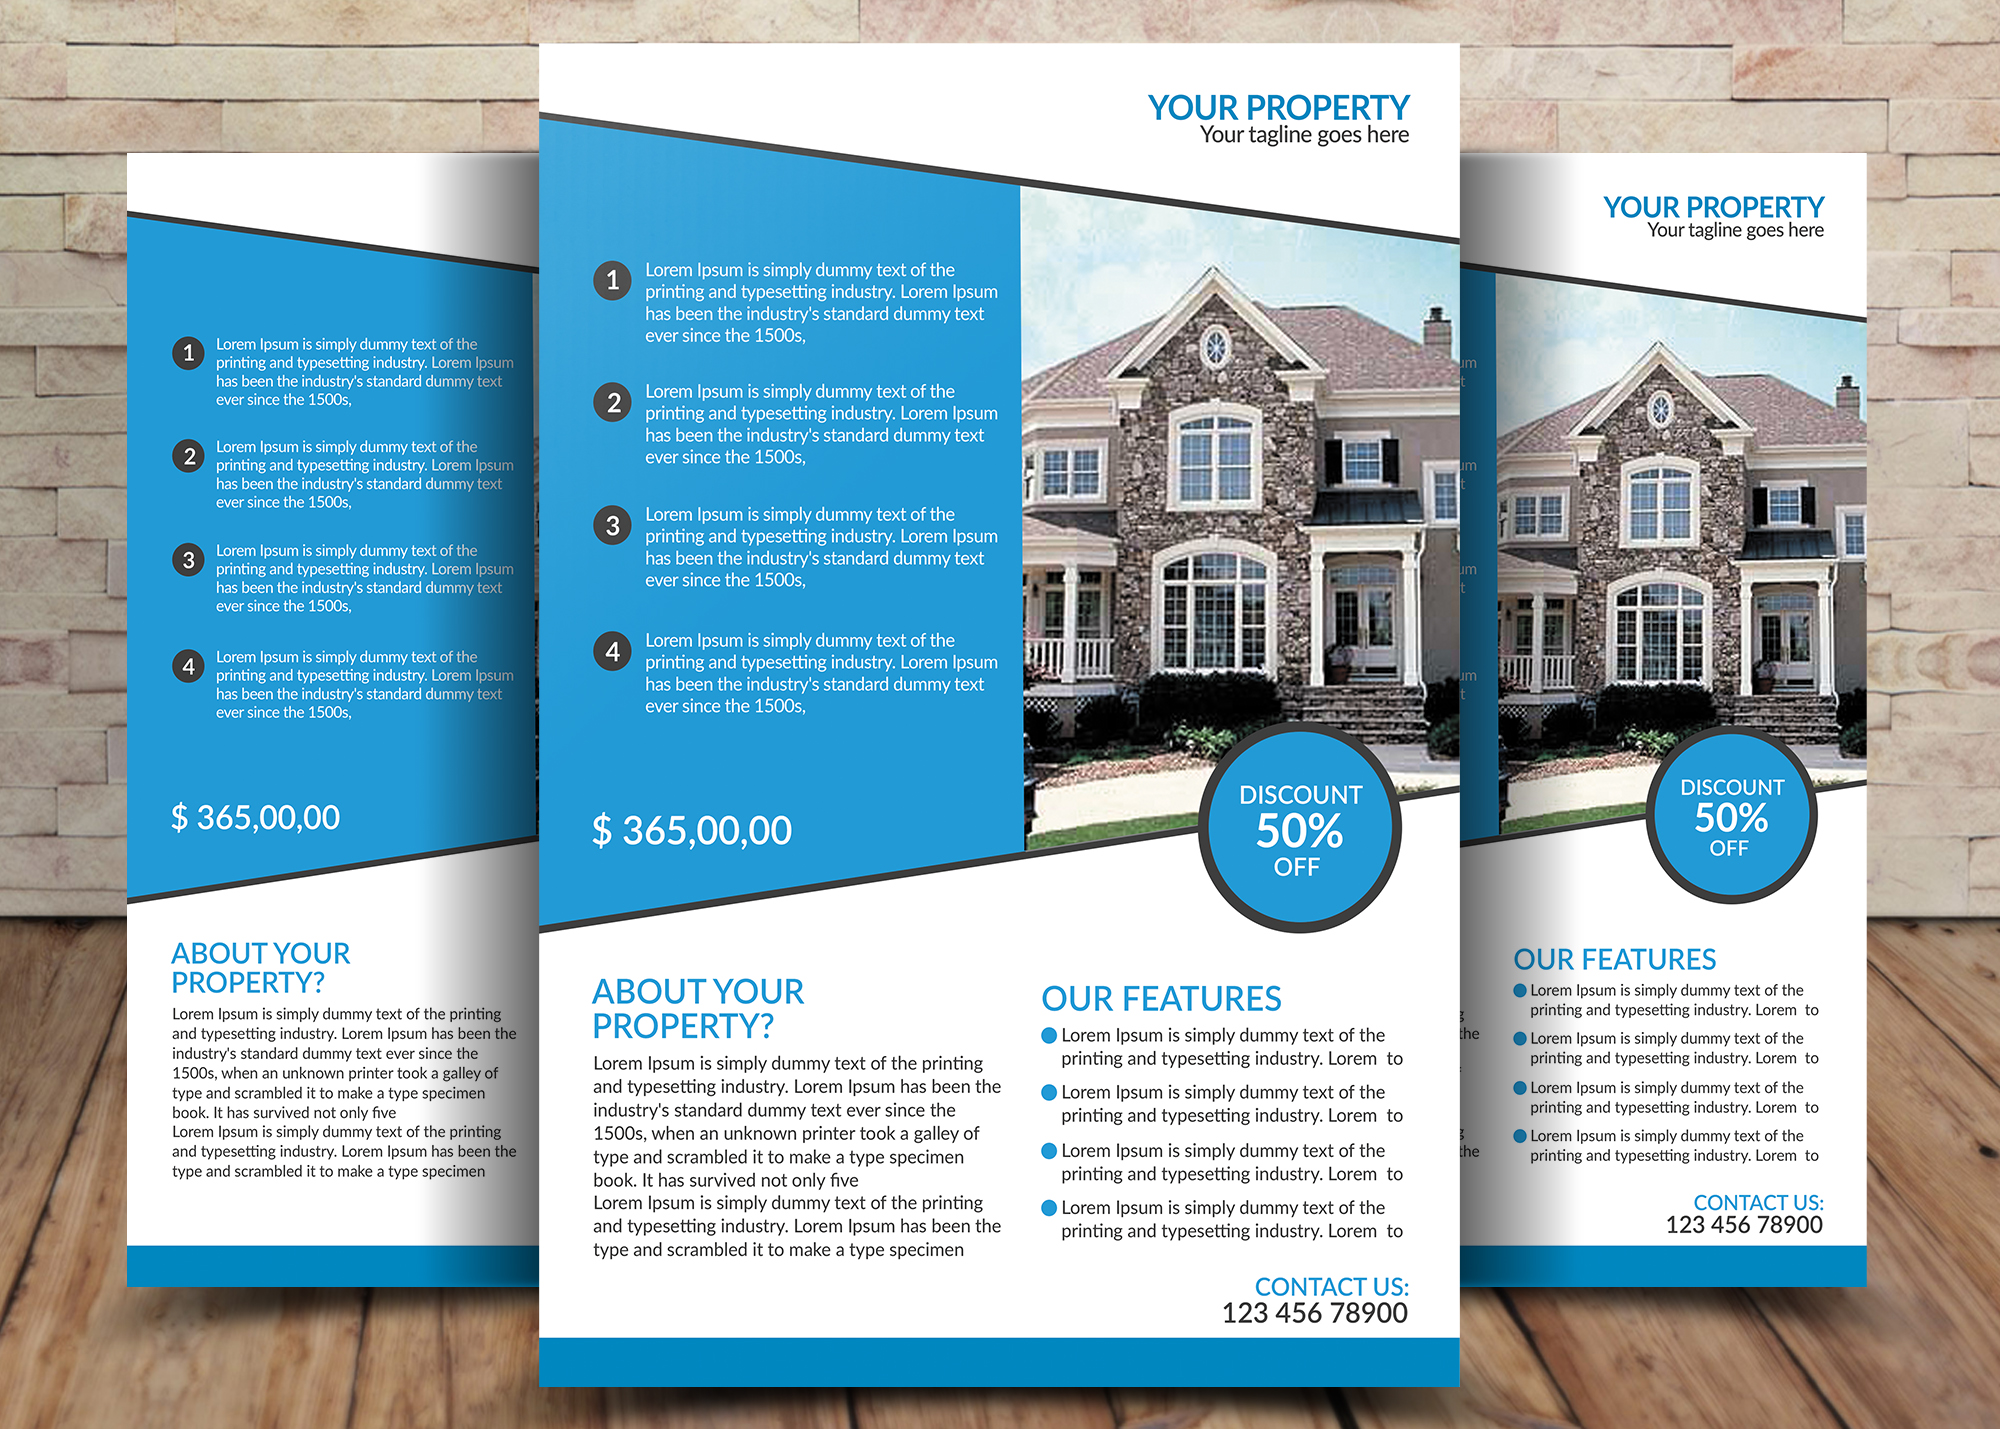 House For Sale Flyer Design example image 1